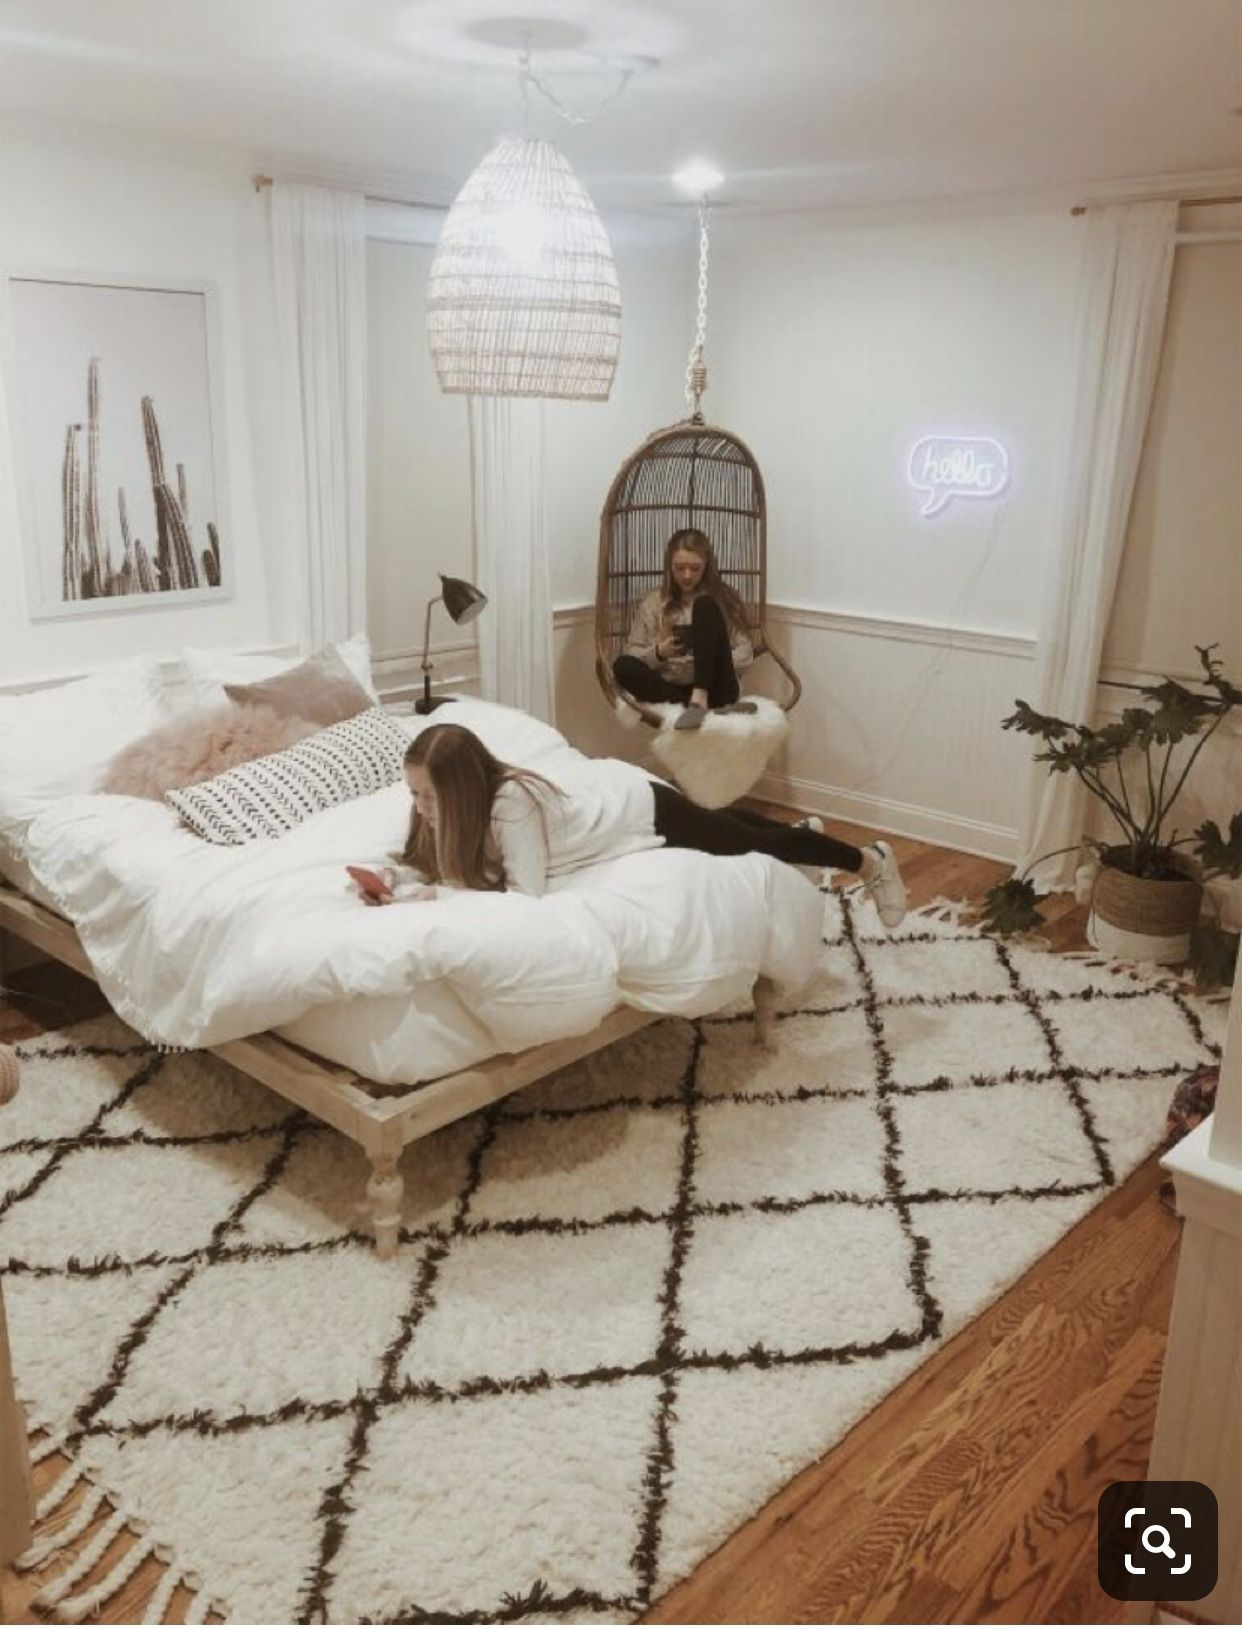 Pin By Riley Kister On Room Decoration Bedroom Inspirations Bedroom Design Bedroom Decor Bedroom decor essential ideas